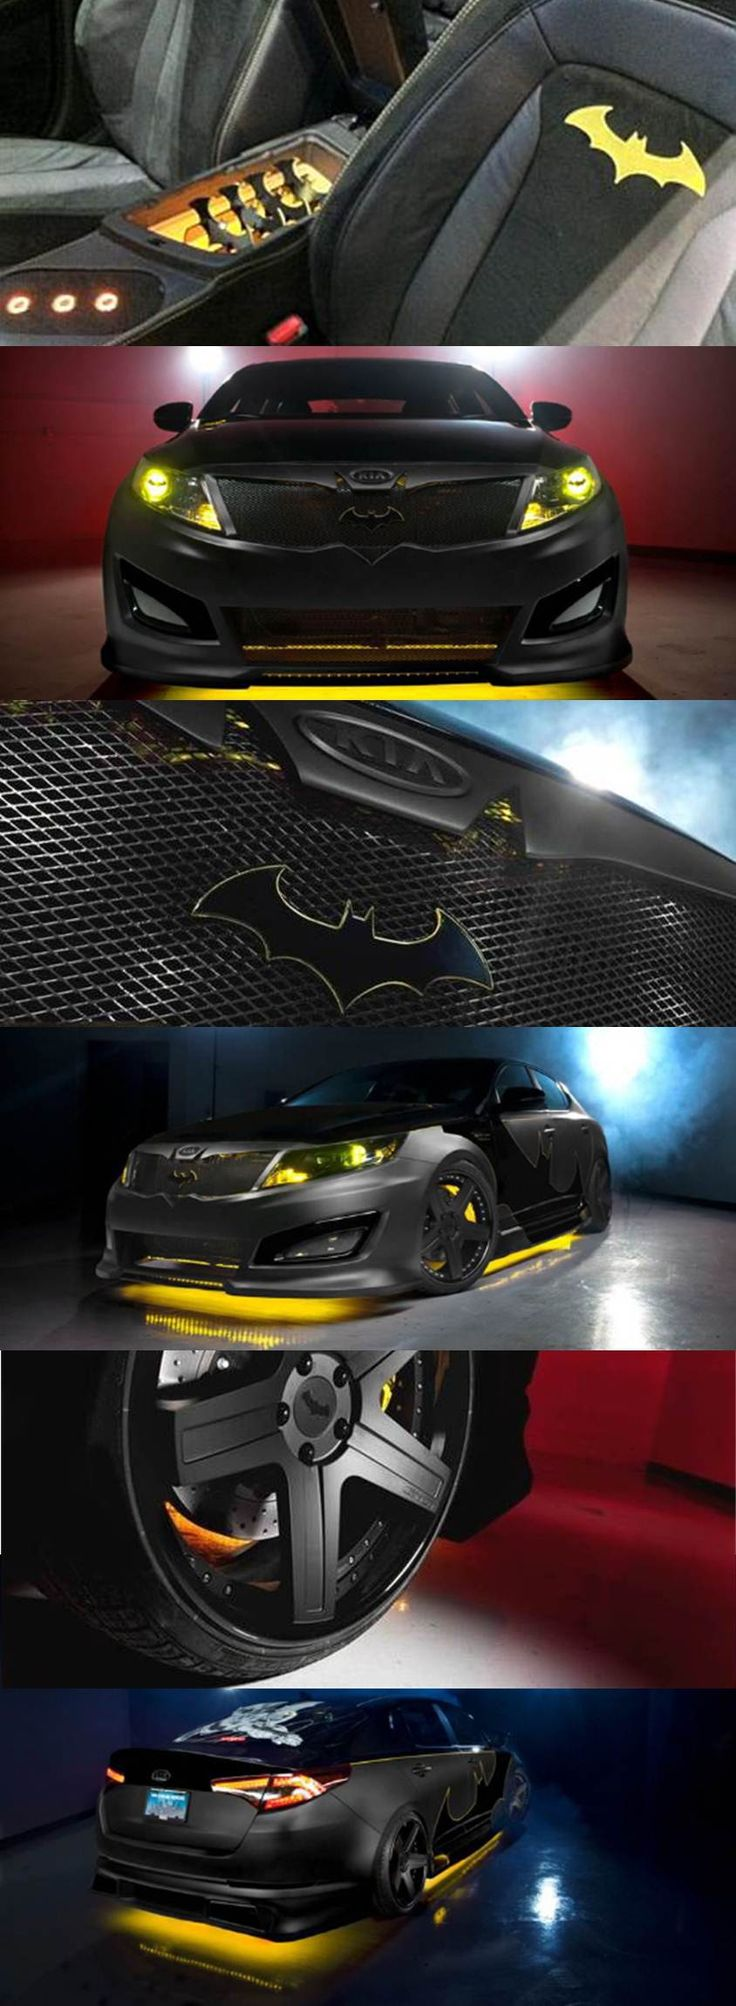 Batman-inspired Kia Optima ready to fight hunger in Africa